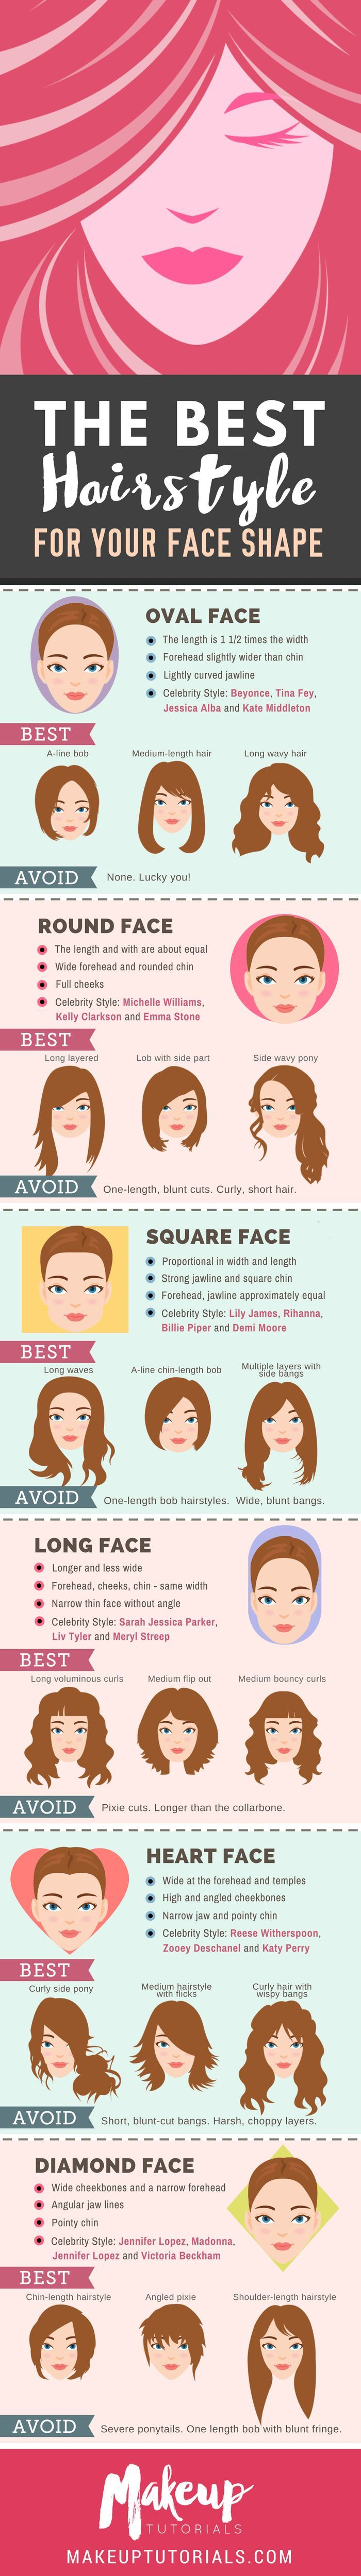 The Ultimate Hairstyle Guide For Your Face Shape | The Best Haircut for your Fac...